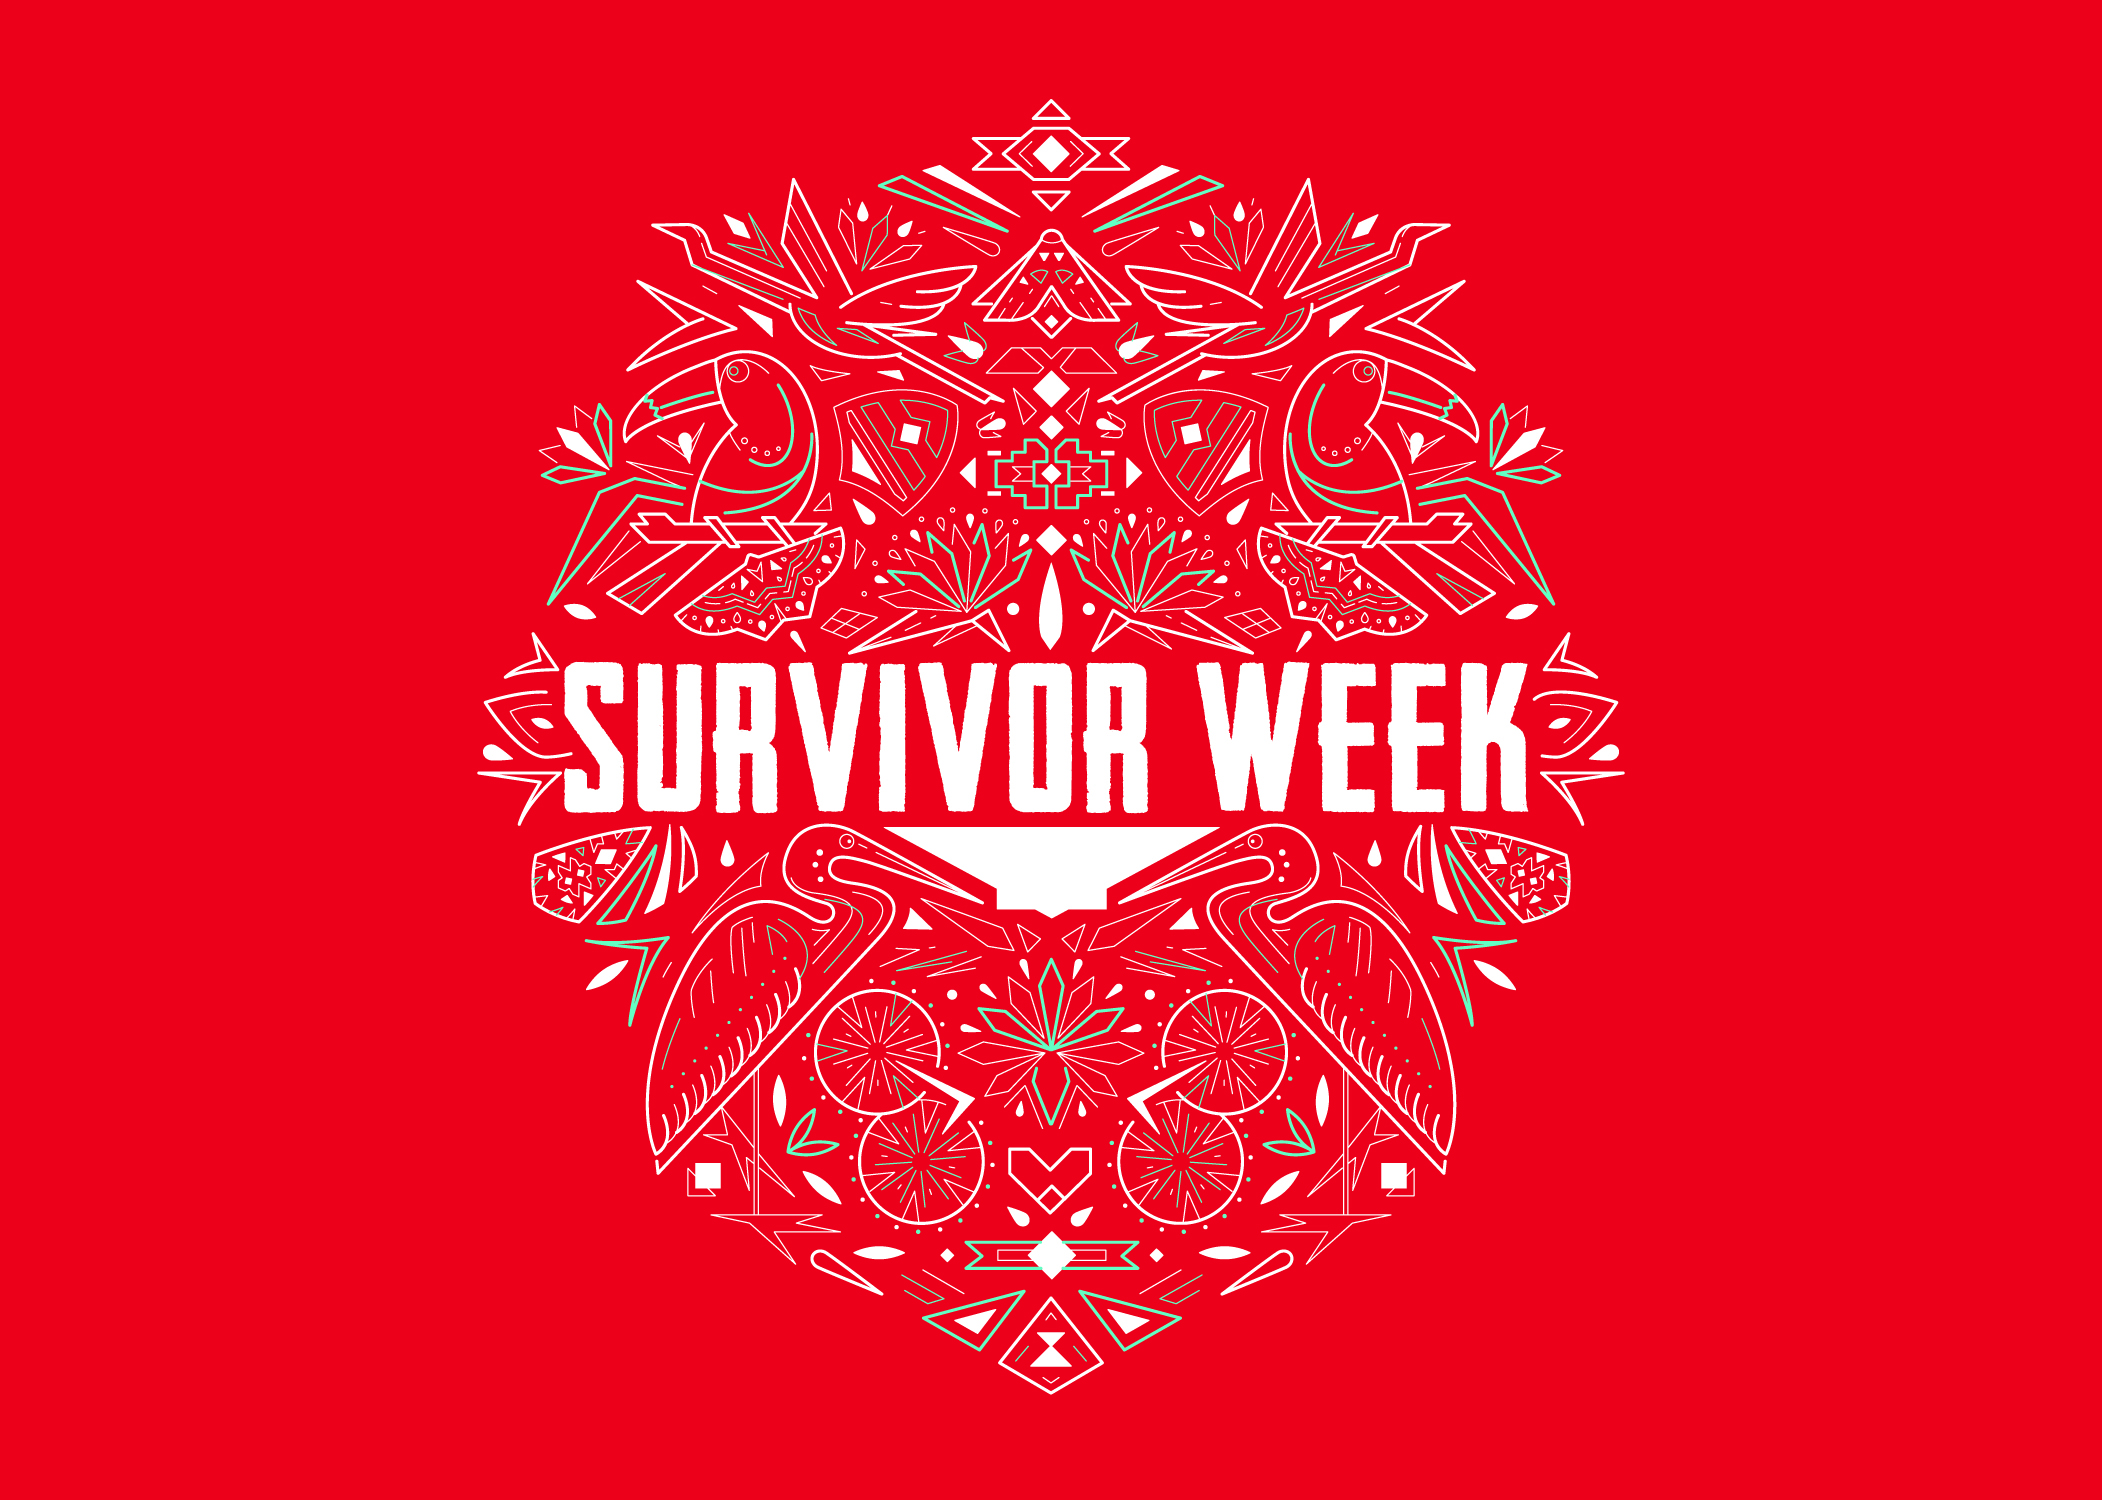 Survivorweek no date